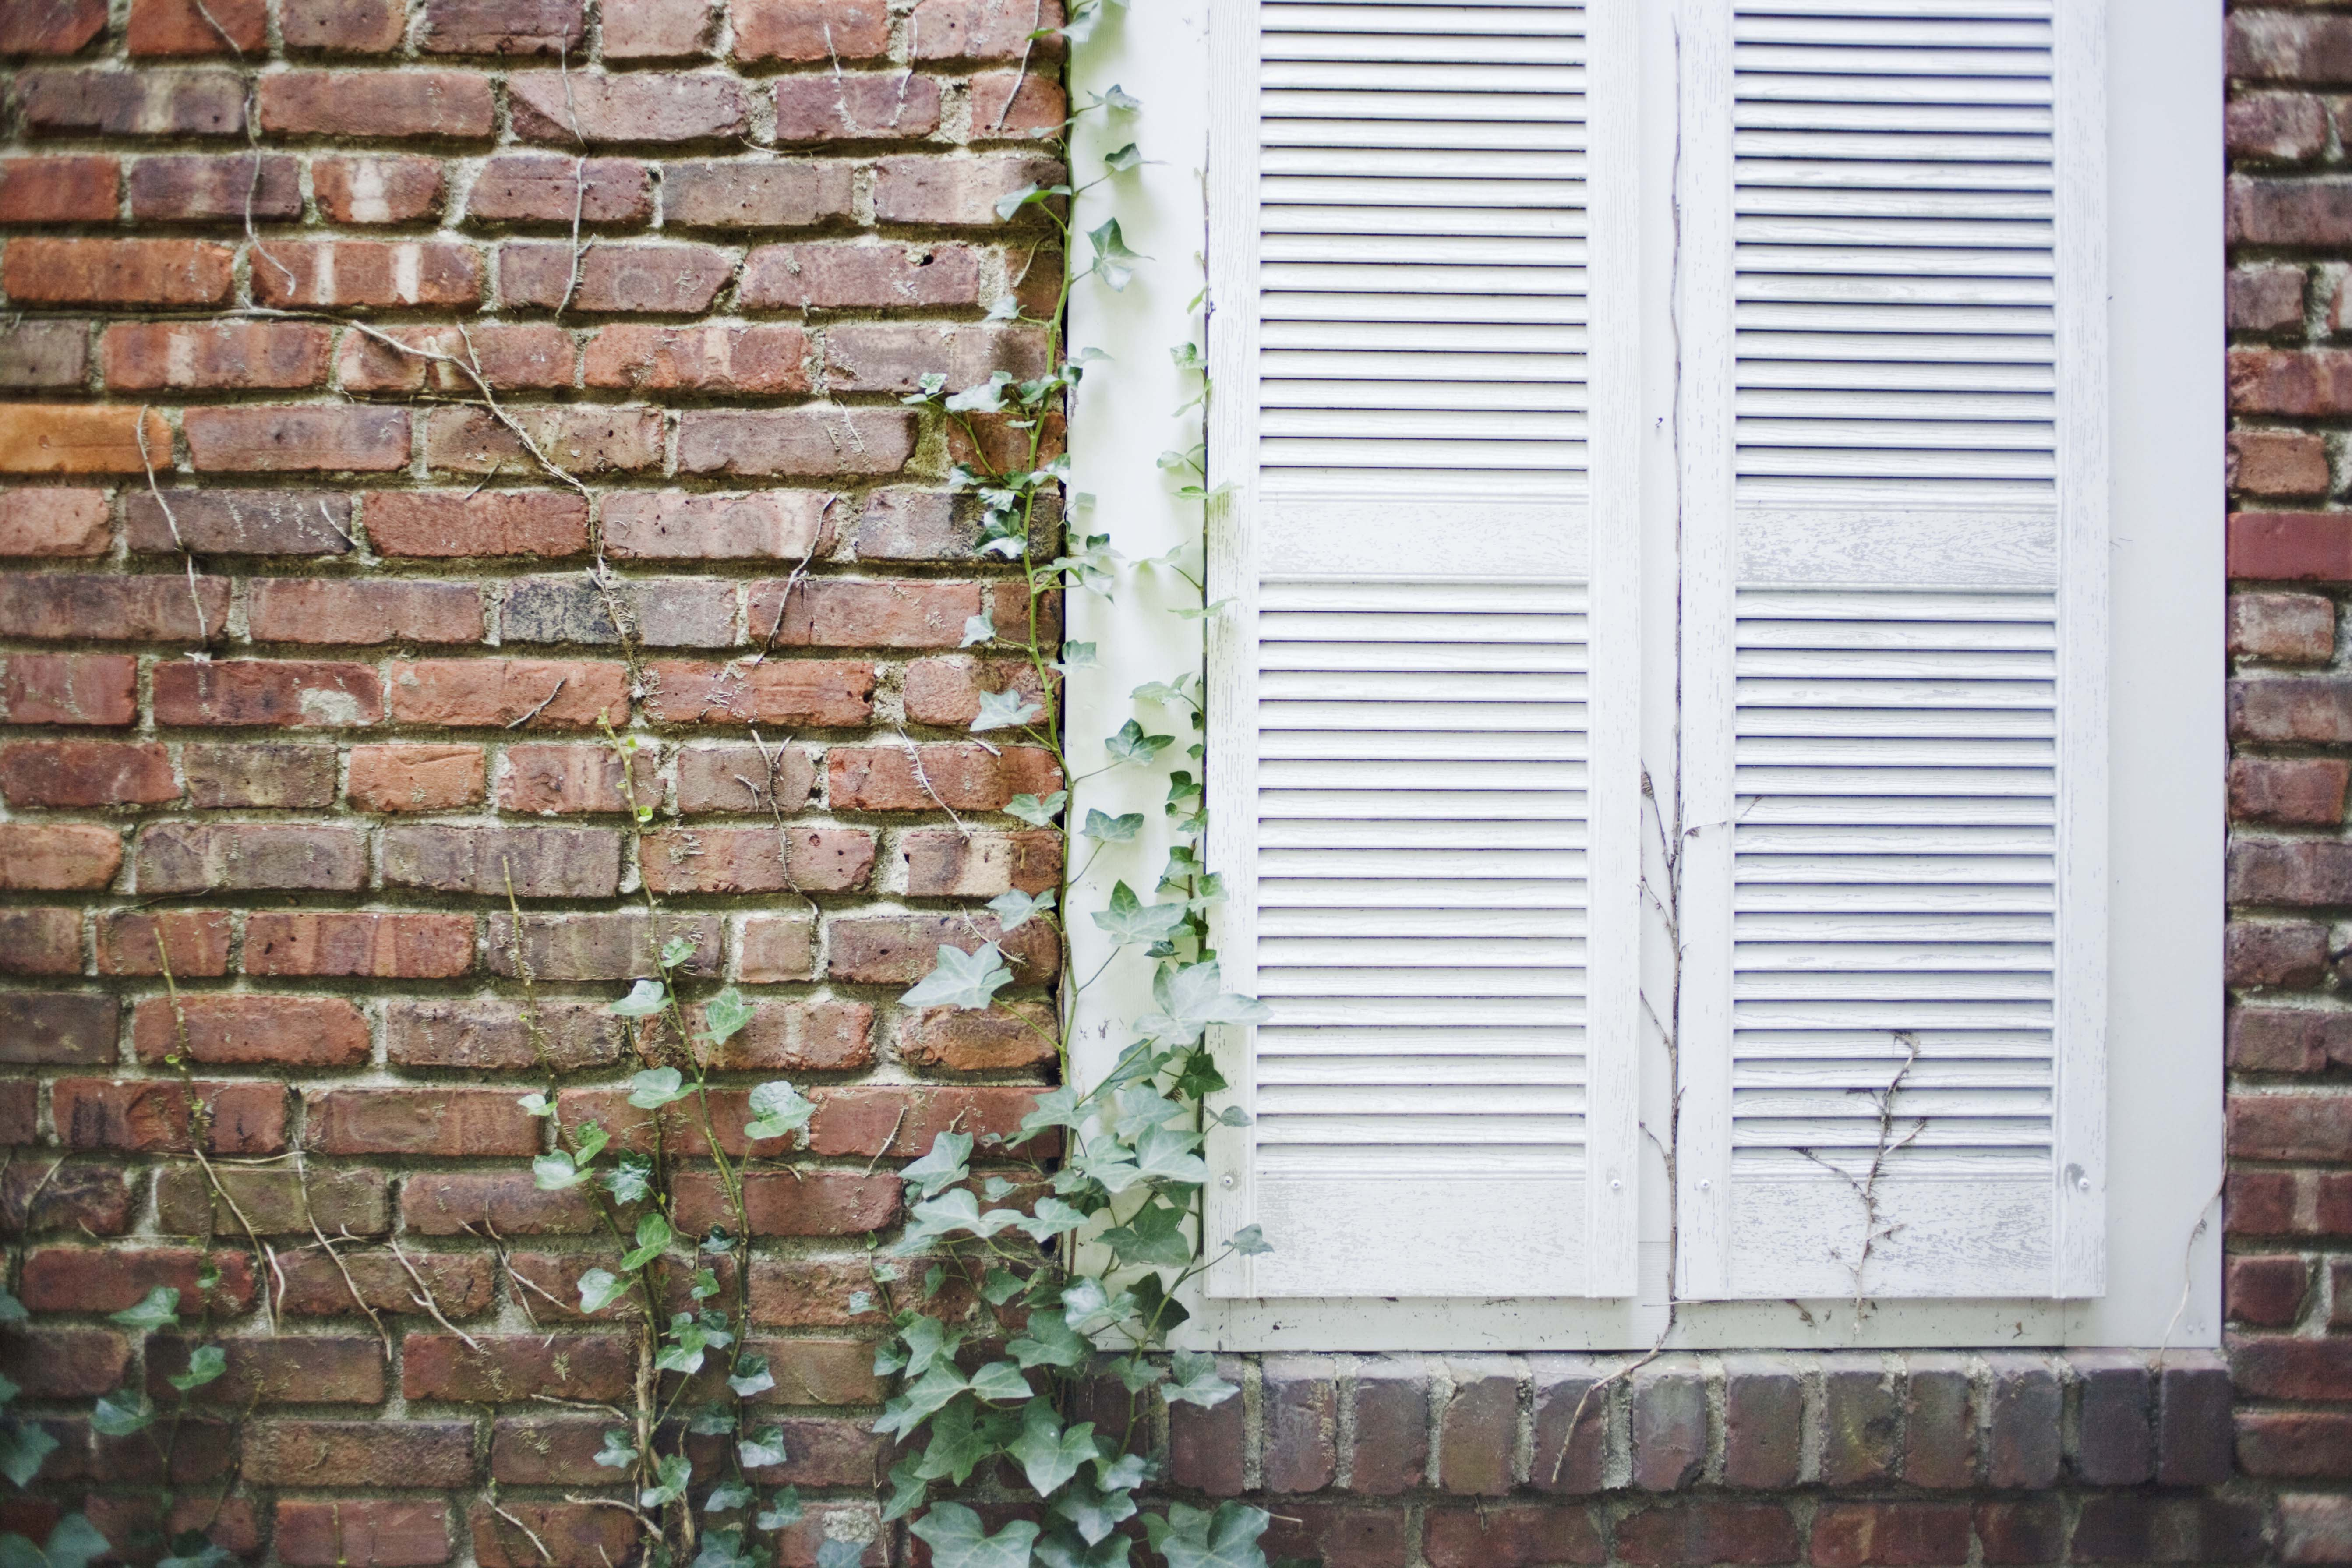 Vine Shuttered window of brick house with ivy growing on it